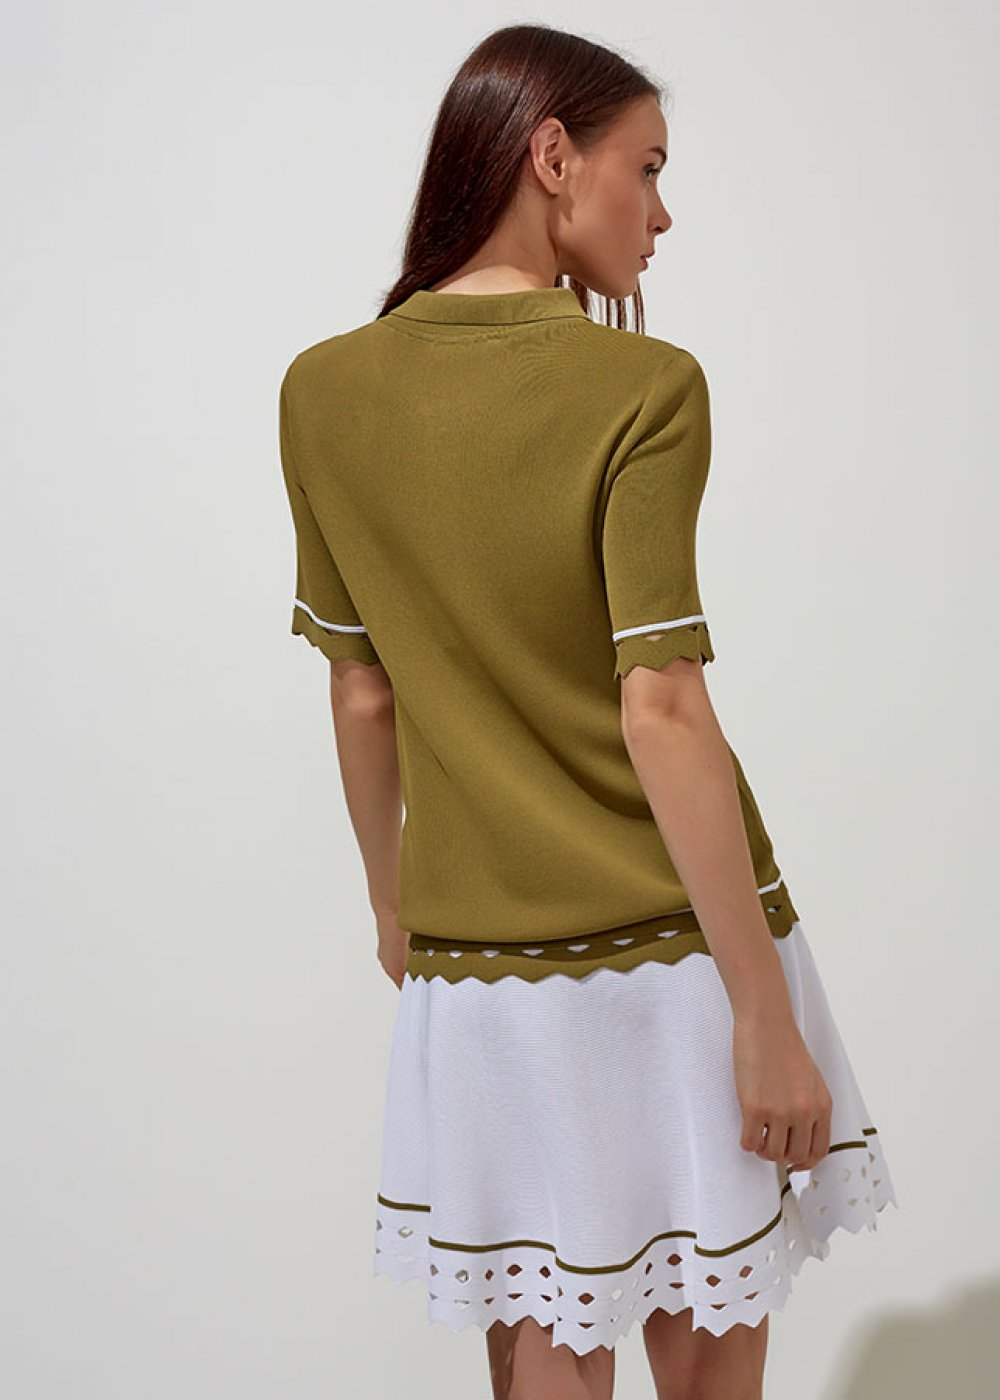 POLO NECK HEM DETAILTED HERB GREEN KNIT TOP